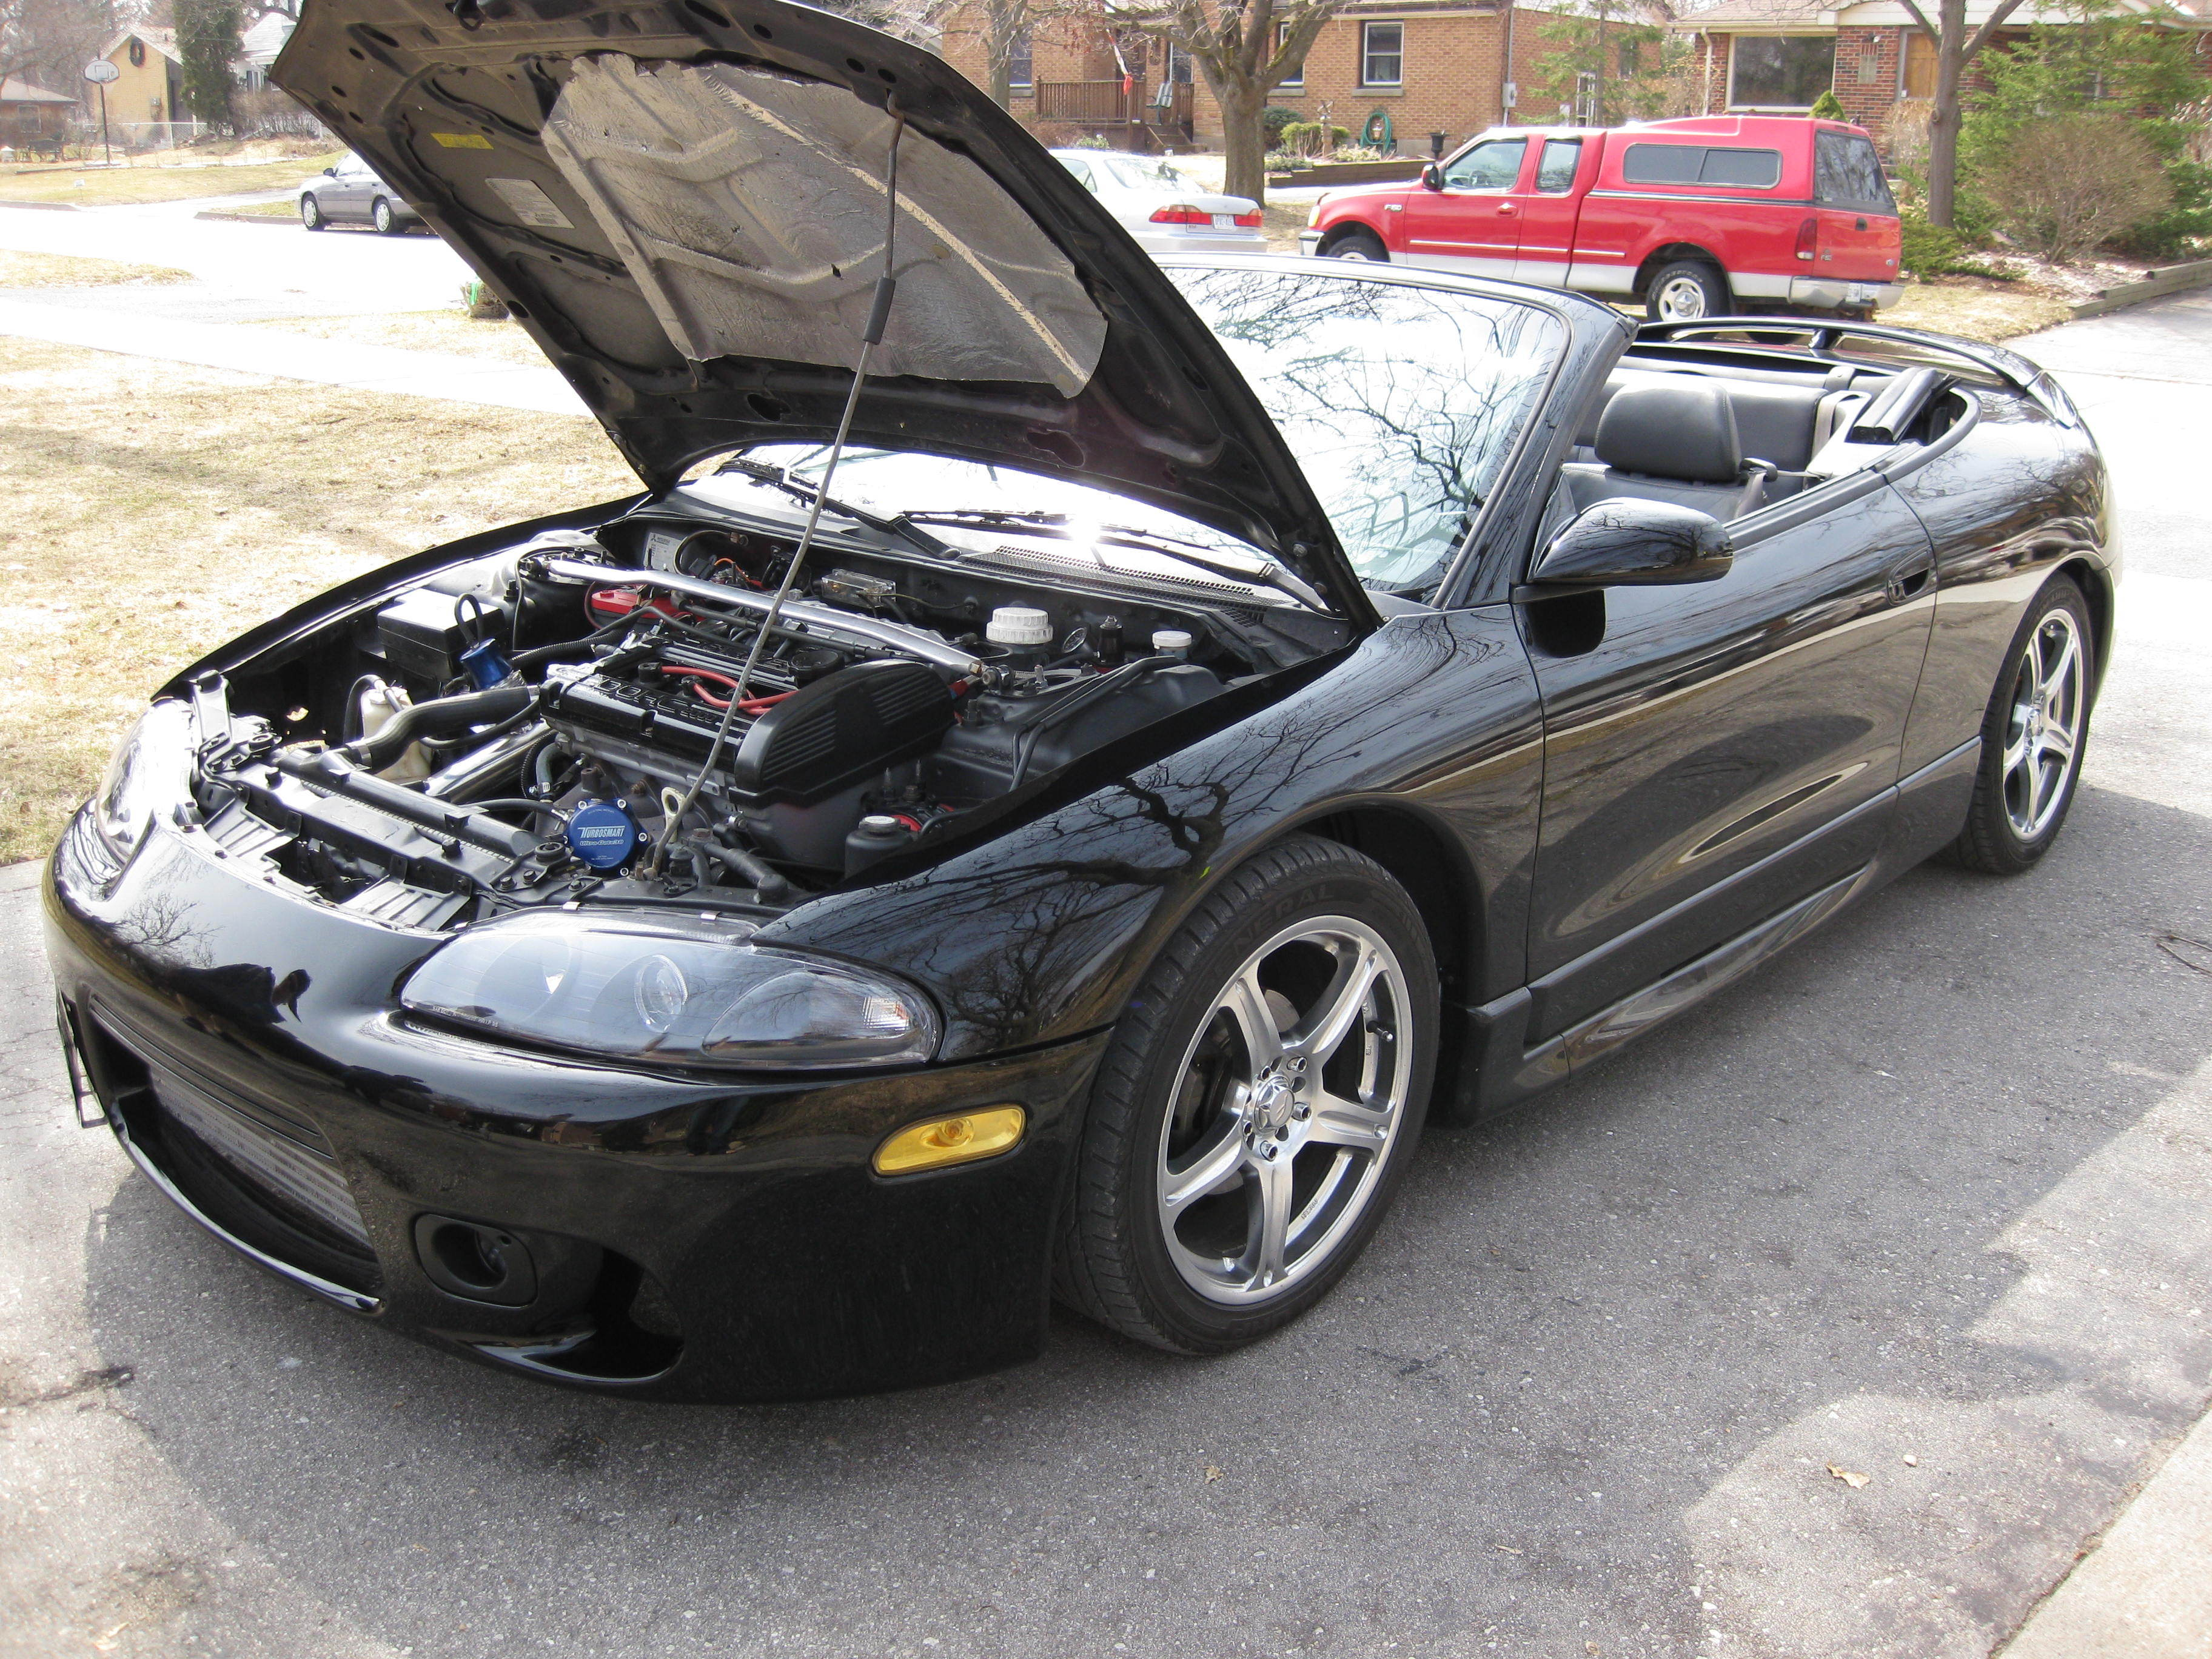 Mitsubishi 3000GT VR4 58638517 furthermore Mitsubishi Eclipse Ii Spider 1996 Pictures 146774 besides 6332966966 likewise 202598330 moreover 1995 Mitsubishi Eclipse. on 1996 mitsubishi eclipse